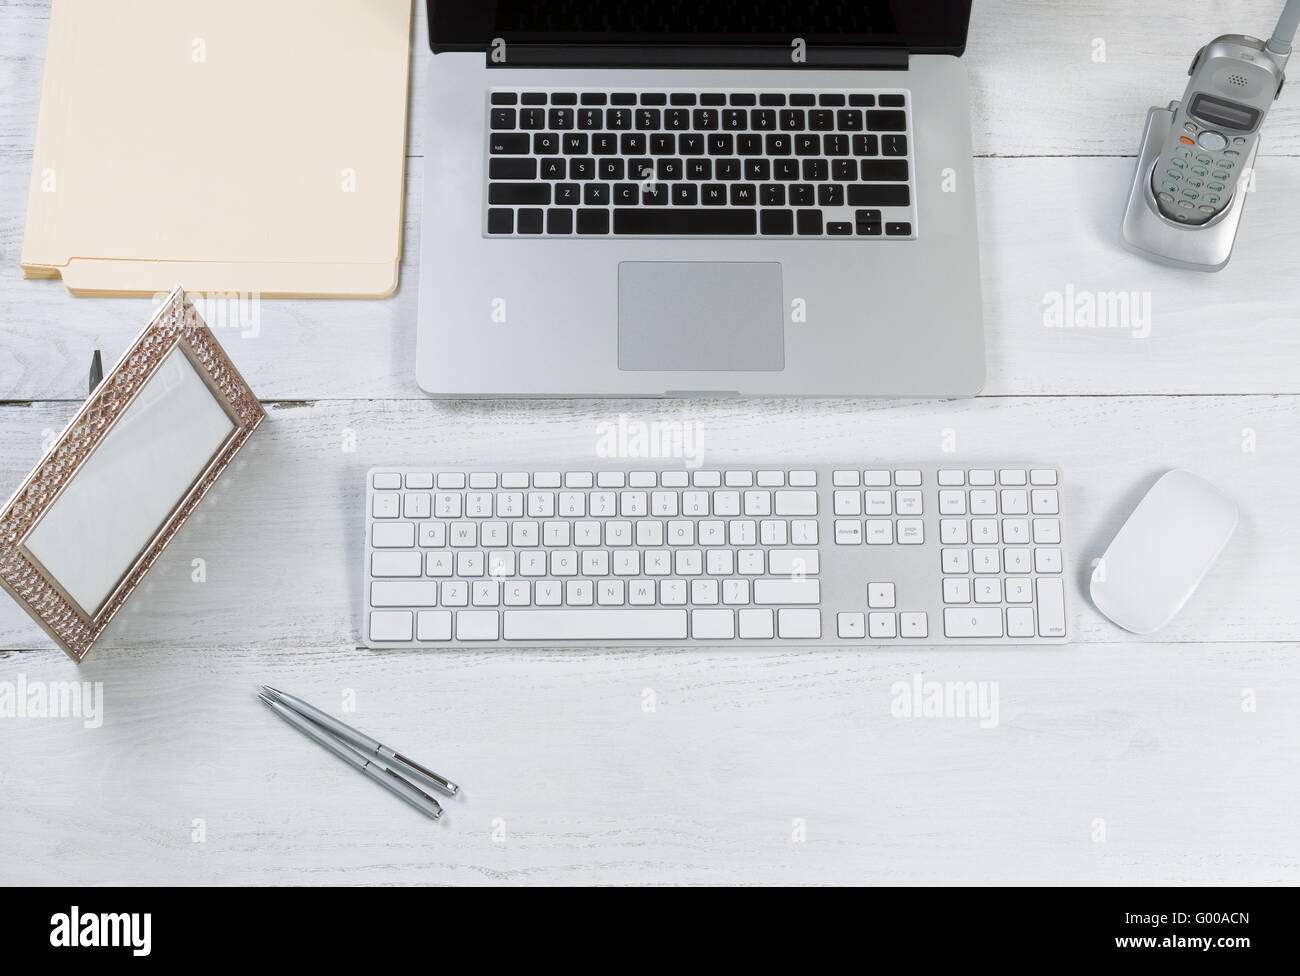 Organized desktop setup for efficiency - Stock Image